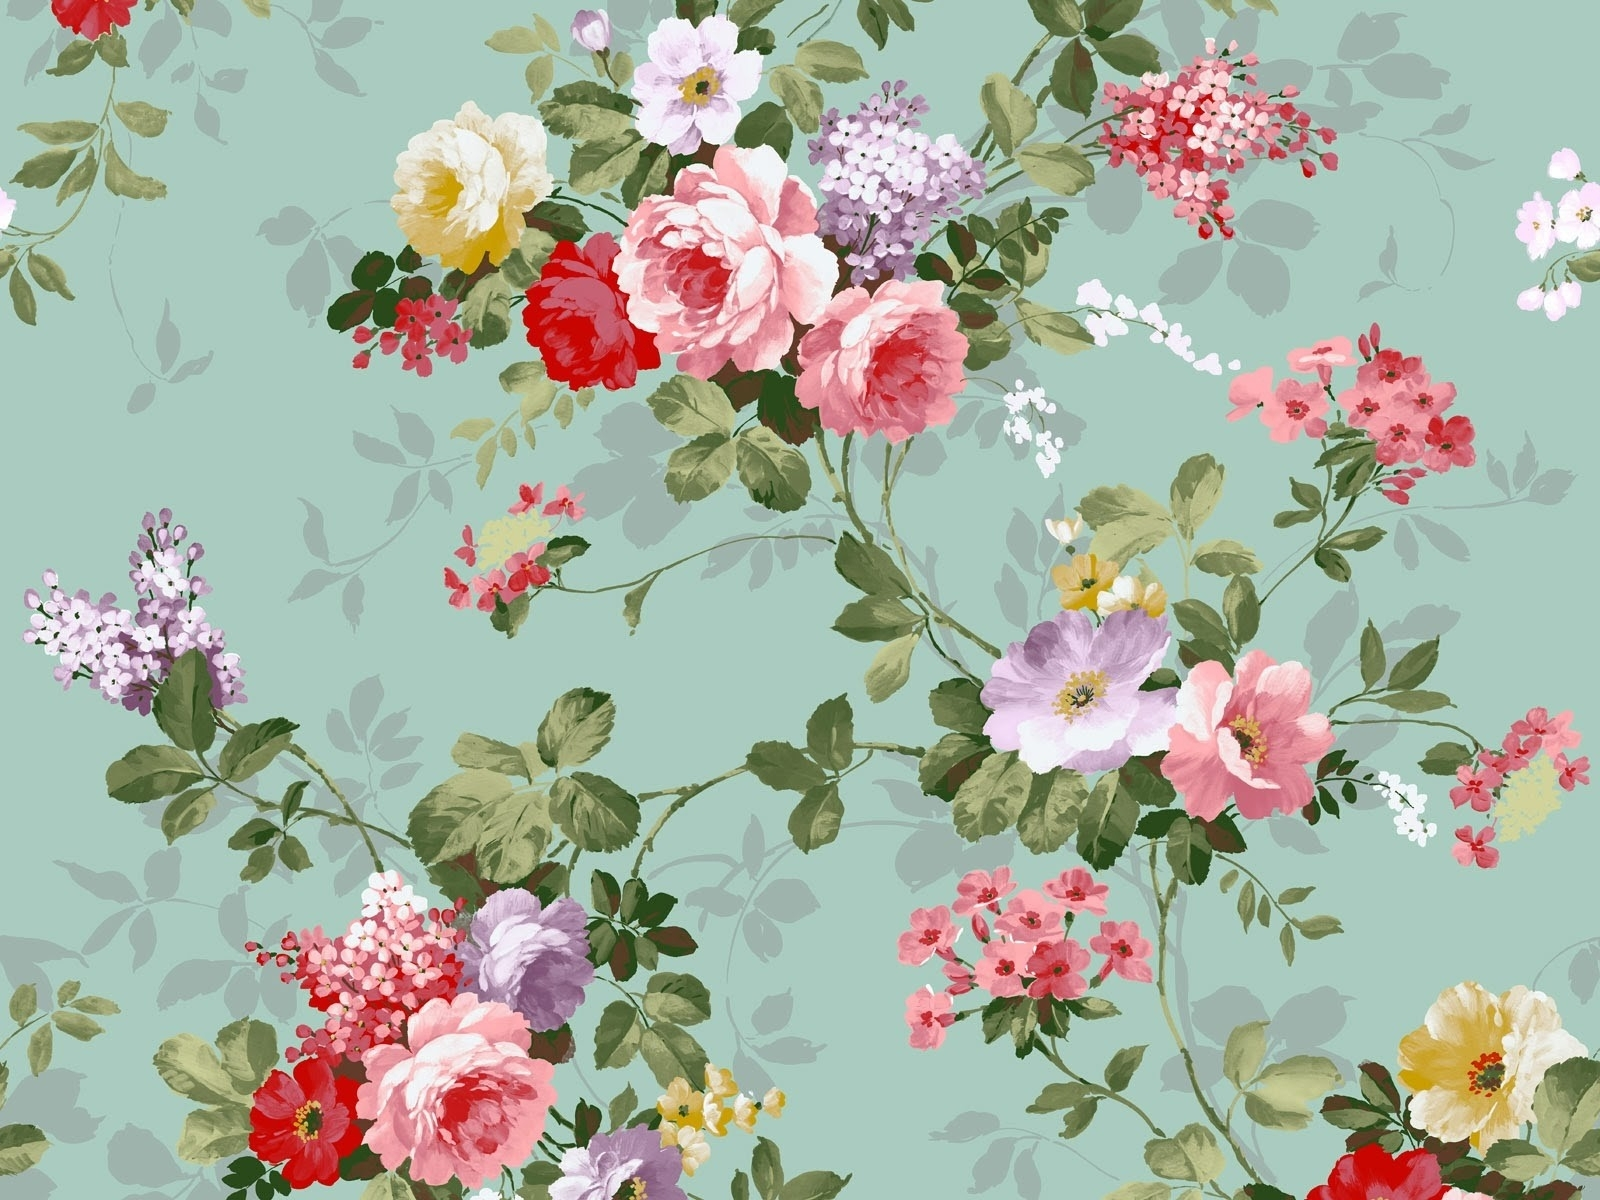 vintage floral background free download #84023 wallpaper download hd